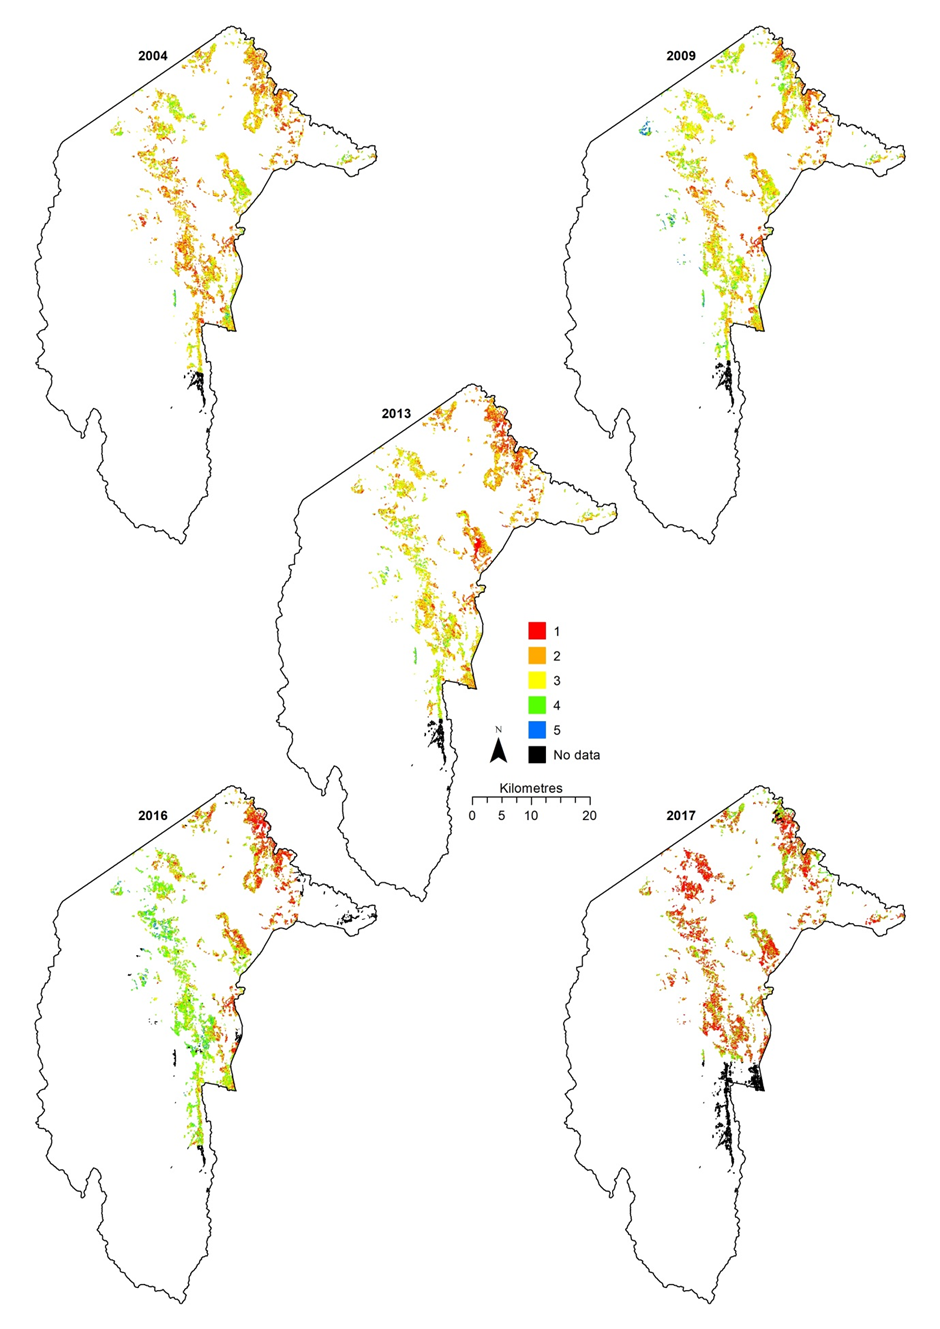 Figure 2 Temporal condition mapping of Blakely's Red Gum (Eucalyptus blakelyi) over years 2004, 2009, 2013, 2016, and 2017